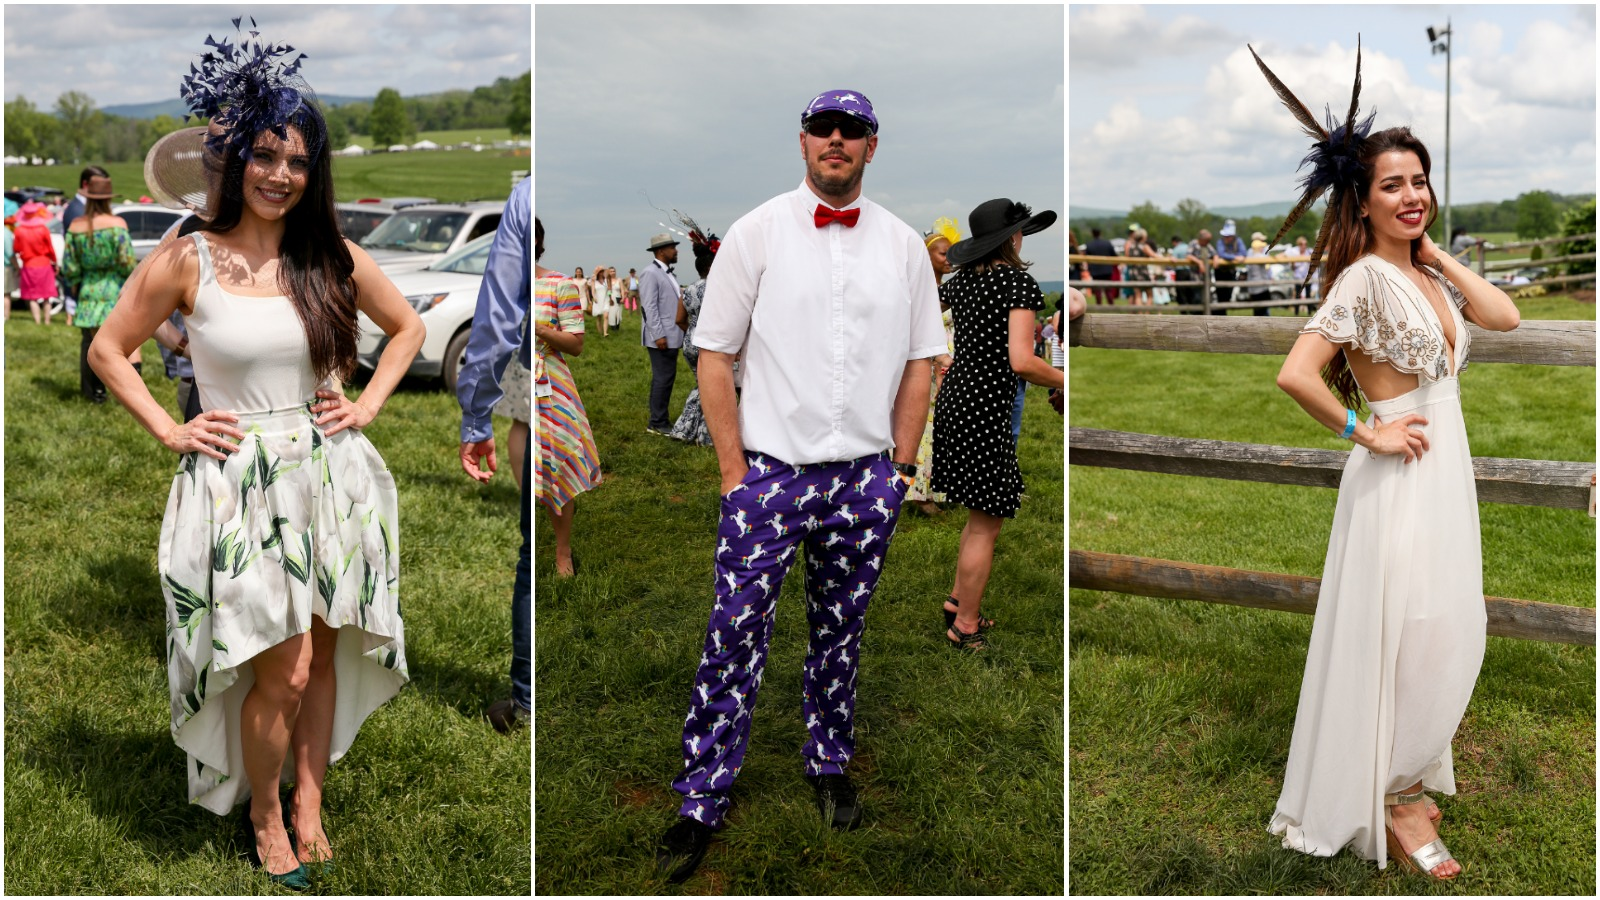 Race day looks can be gorgeous or... a bit eccentric. Here are some of the best and wildest looks we saw at the Virginia Gold Cup in Warrenton, Virginia, this year!{ } (Amanda Andrade-Rhoades/DC Refined)